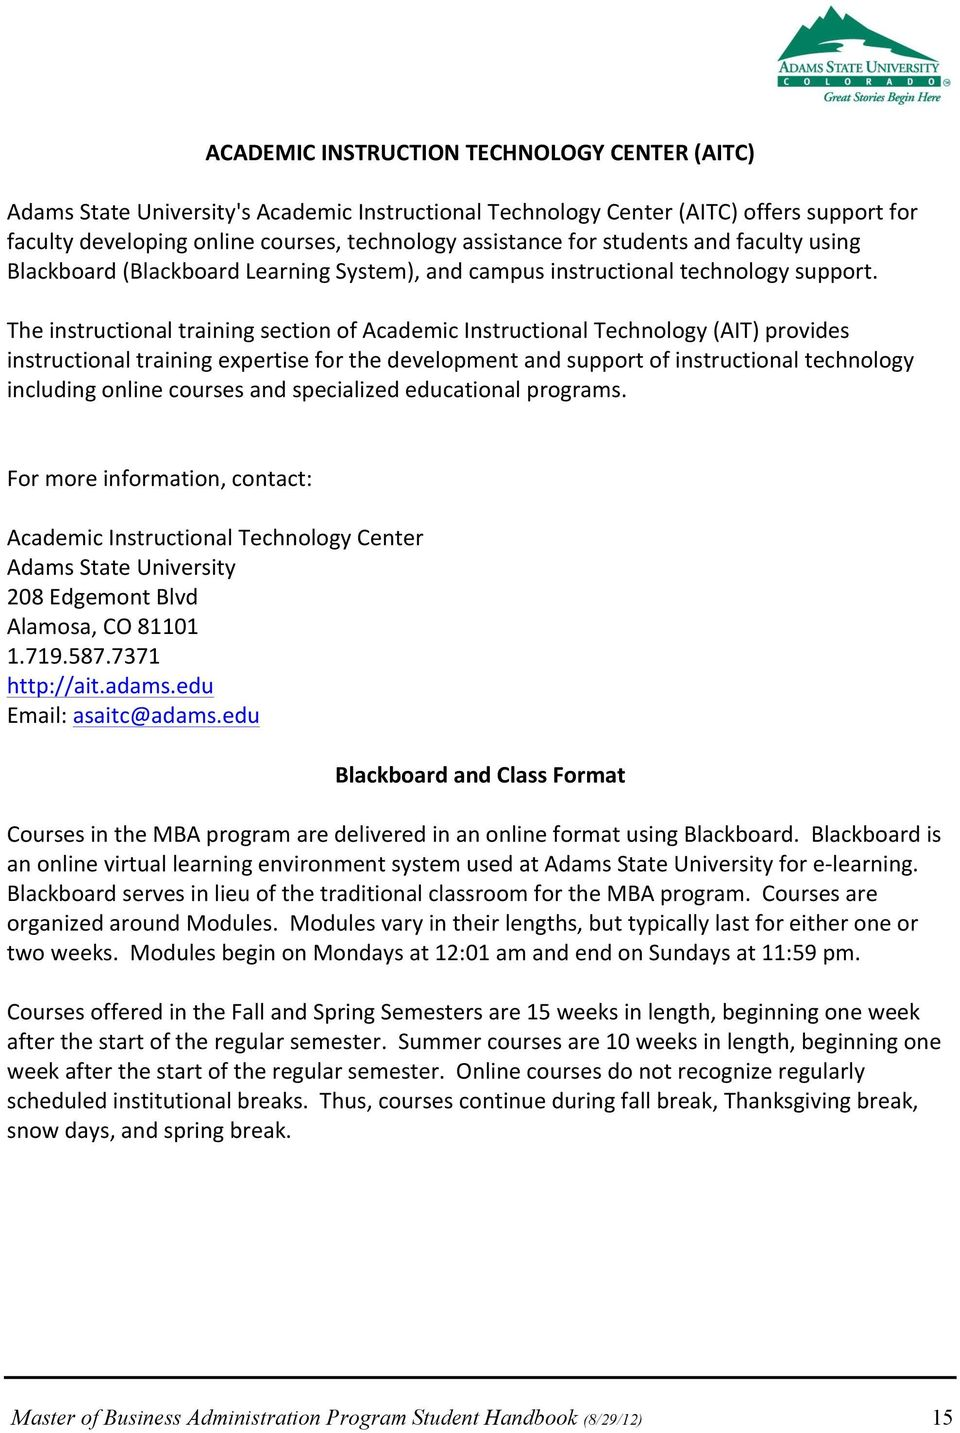 The instructional training section of Academic Instructional Technology (AIT) provides instructional training expertise for the development and support of instructional technology including online